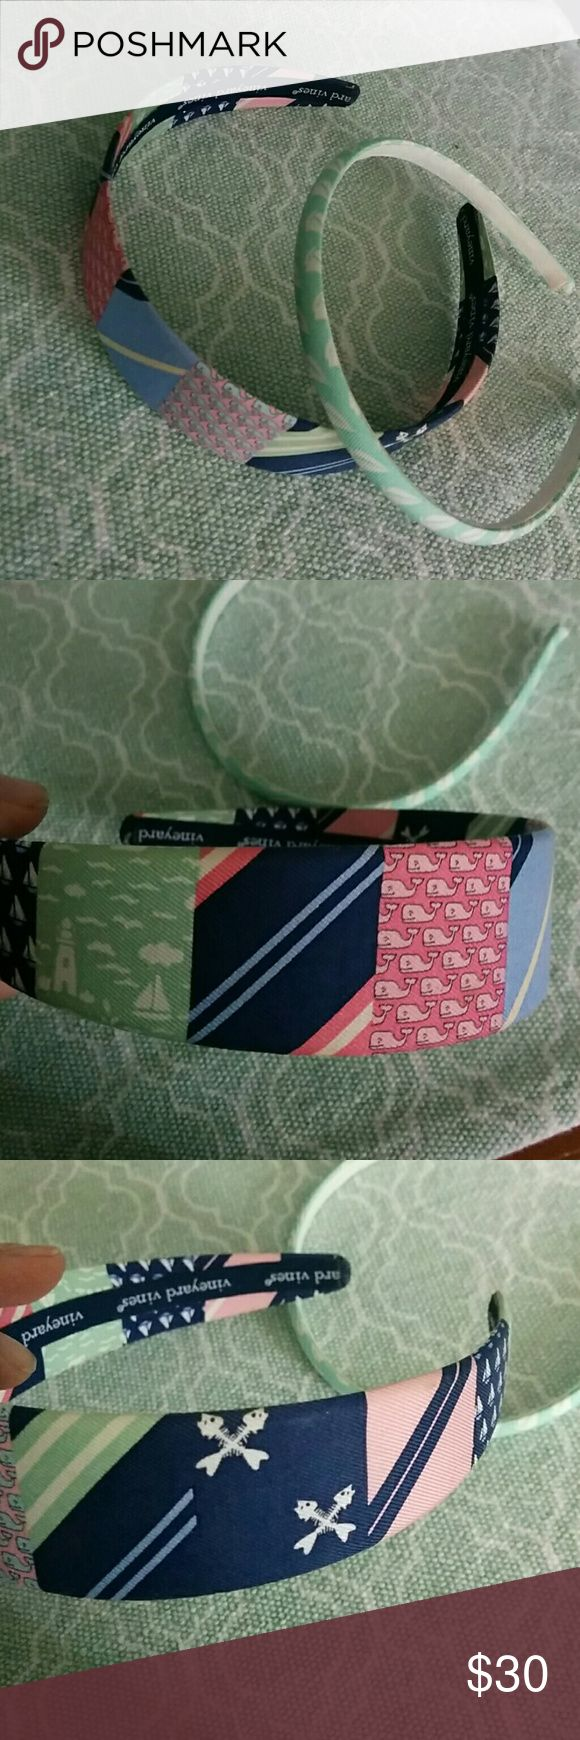 Two Vineyard Vines Headbands Navy Whale Mint Both gently worn only a few times  One is a skinny headband in mint blue with white sailboats $25  Patchwork thicker headband with vineyard vibe prints $40 Vineyard Vines Other